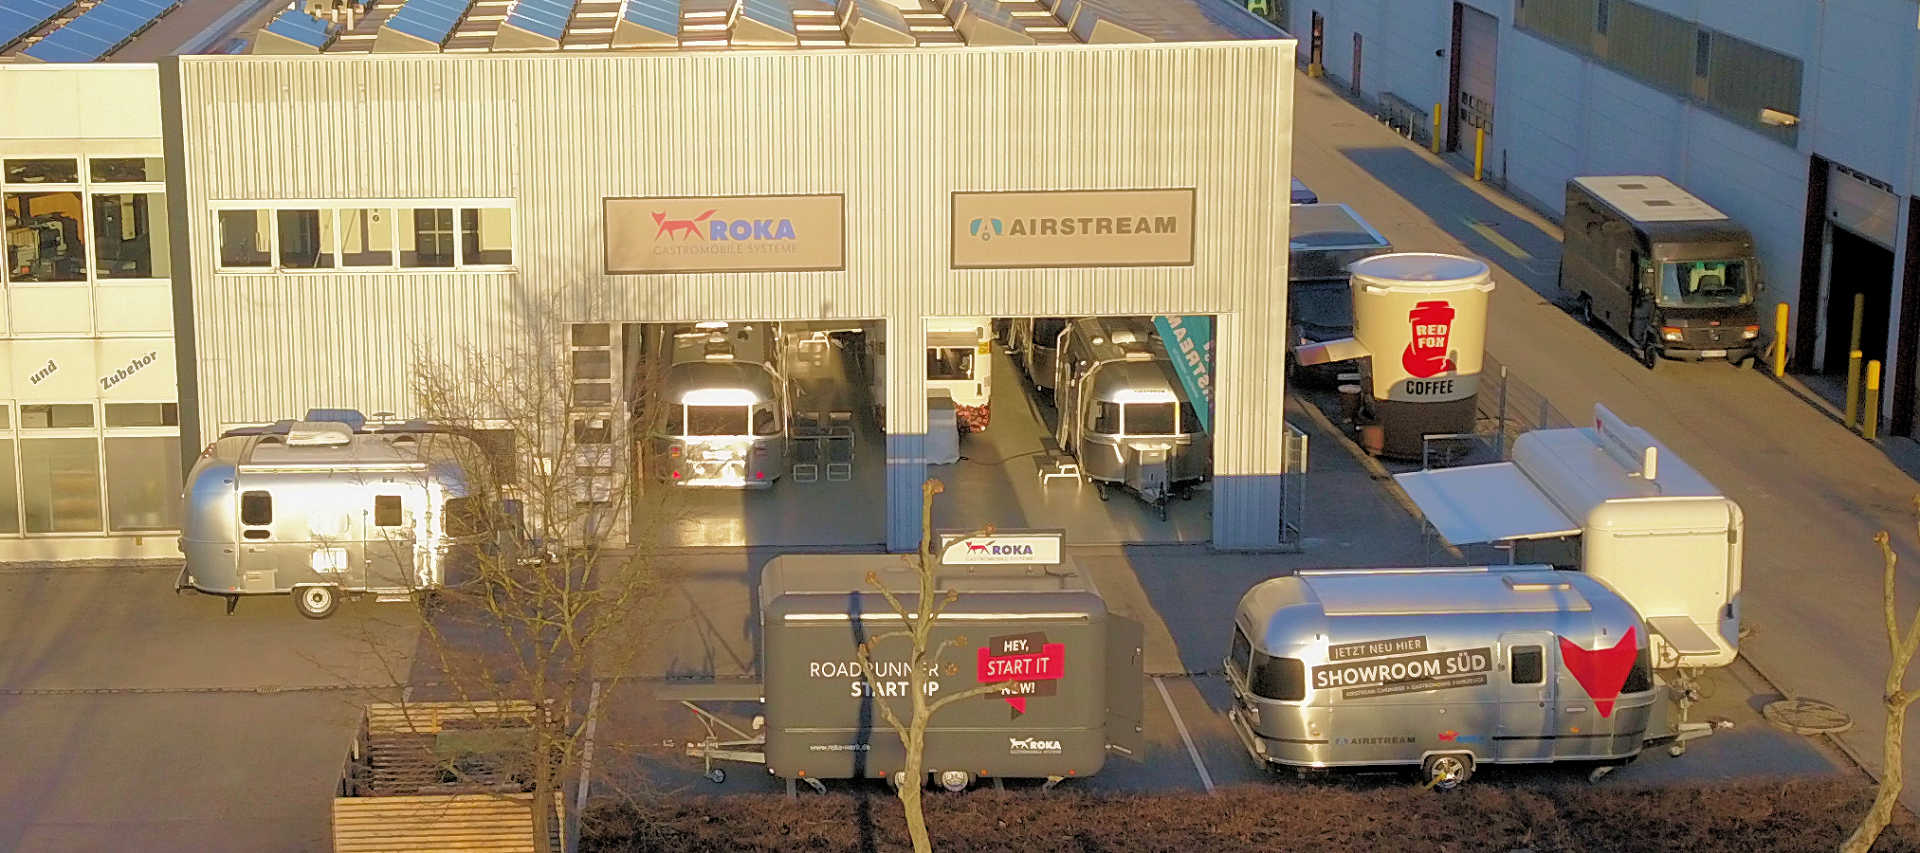 72e94197edf193 The Airstream and Roka Showroom South is conveniently located in  Augsburg Gersthofen